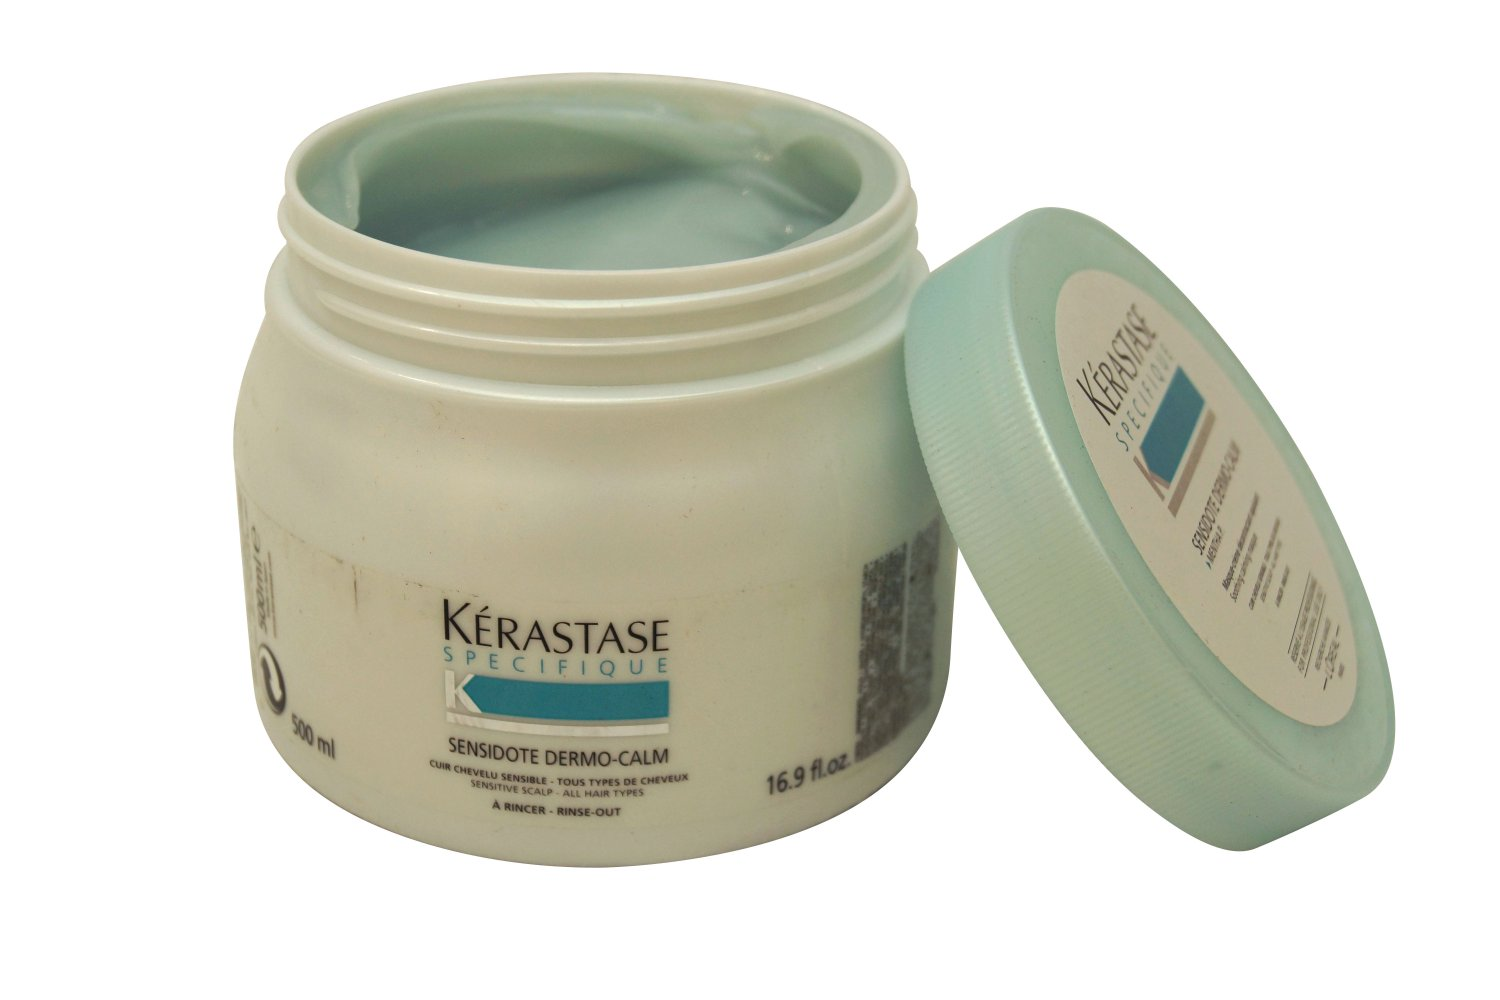 Kerastase Specifique Sensidote Dermo-Calm Masque 500 ml